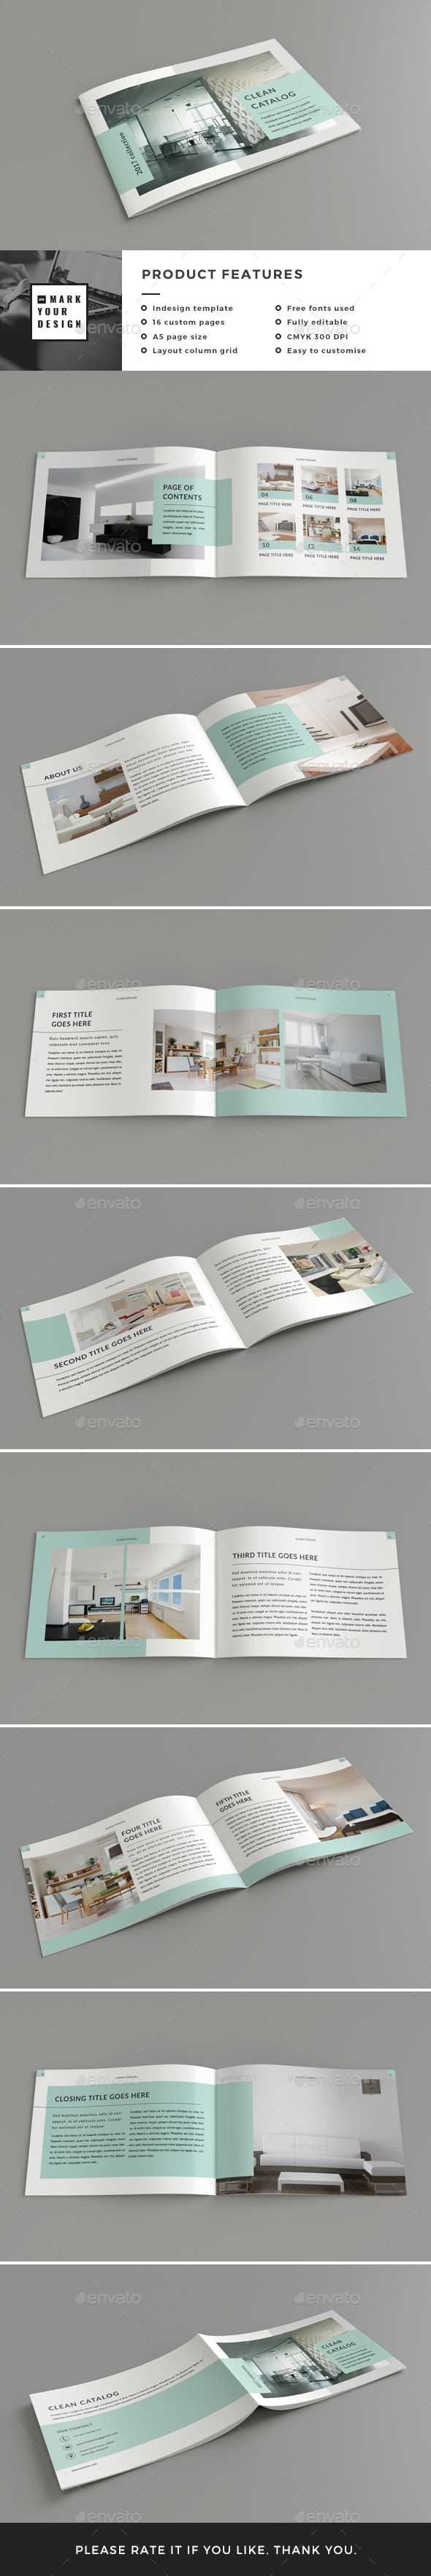 Product Catalog Design Template Pasoevolistco - Brochure design templates indesign